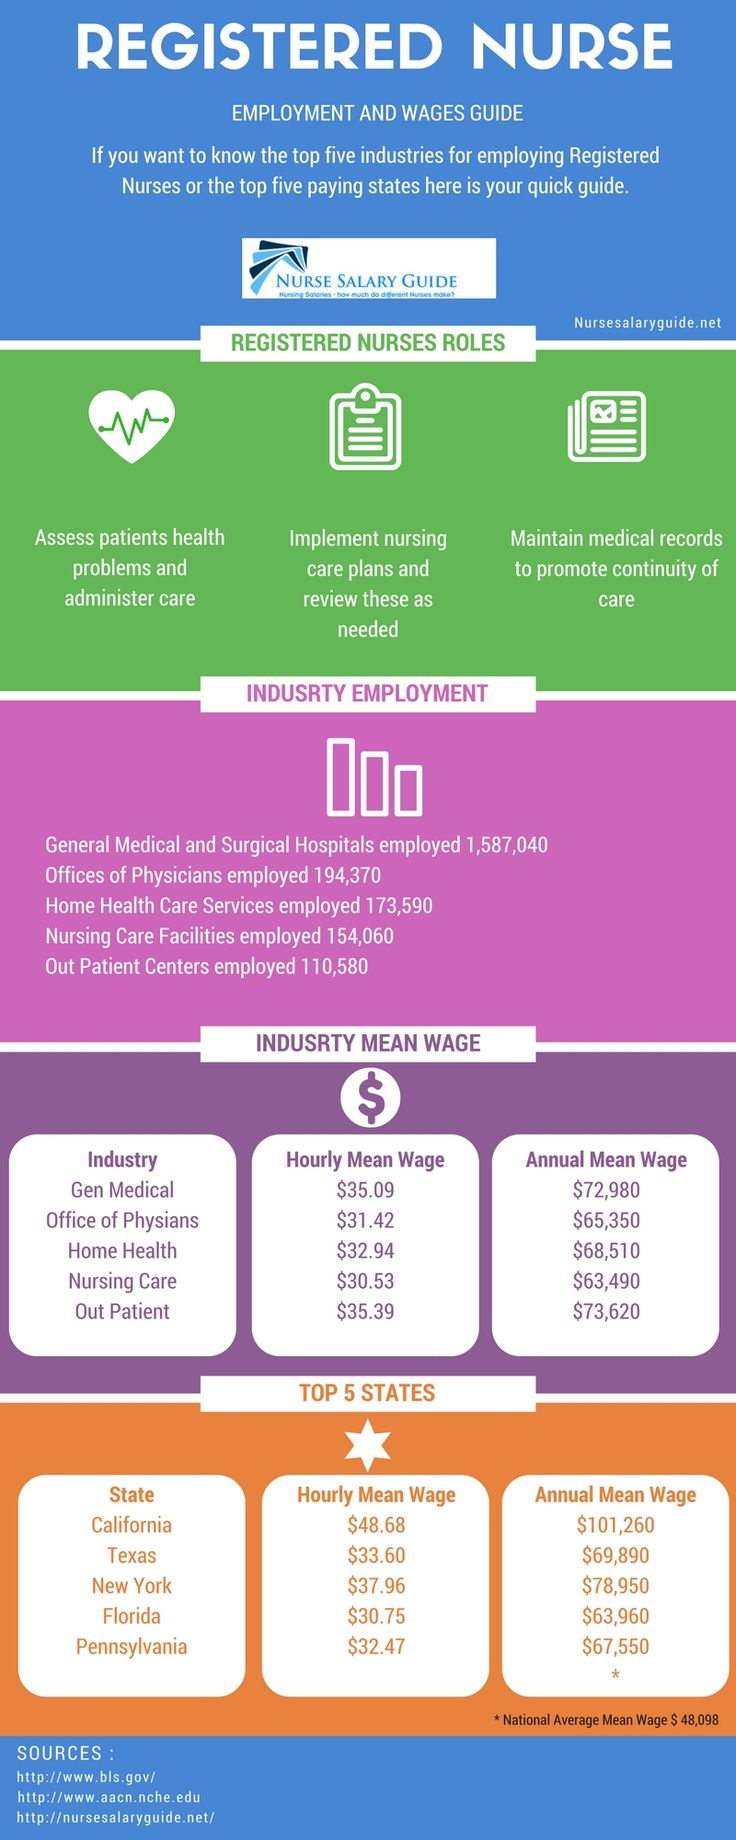 best ideas about registered nurse job description an infographic guide to becoming a registered nurse covering job description employment outlook and salary information an easy to follow quick reference